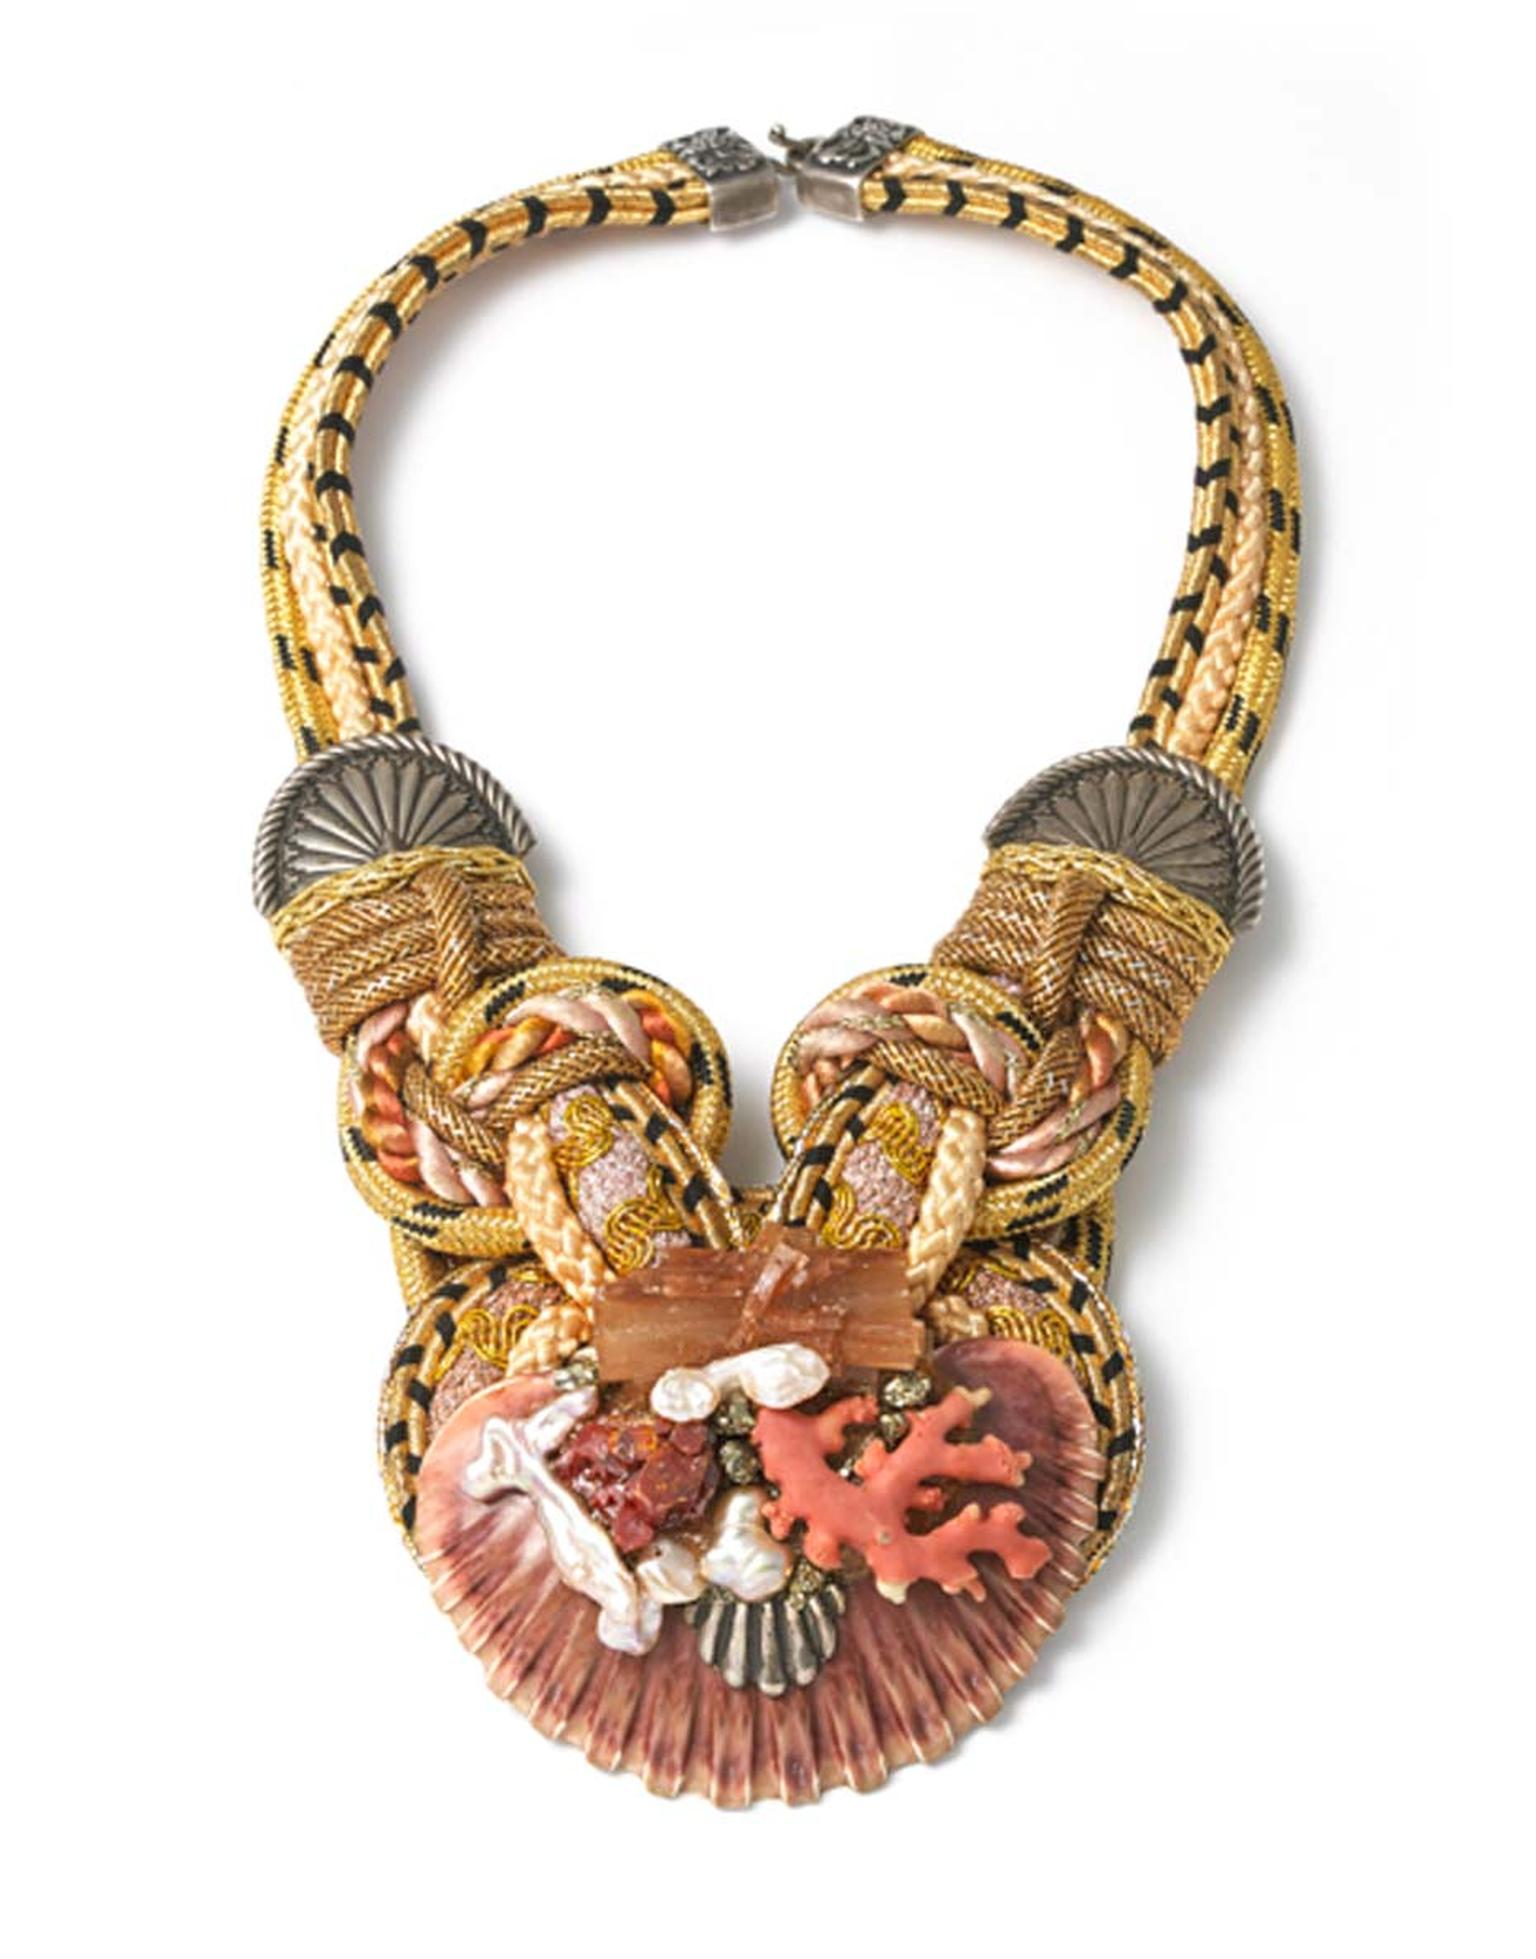 Alex & Lee use a technique called passementerie to create these whimsical mini works of art and set them into hammered copper, attaching colourful silk cording. The outcome is stunning high jewellery pieces like this one, which will form part of Alexander